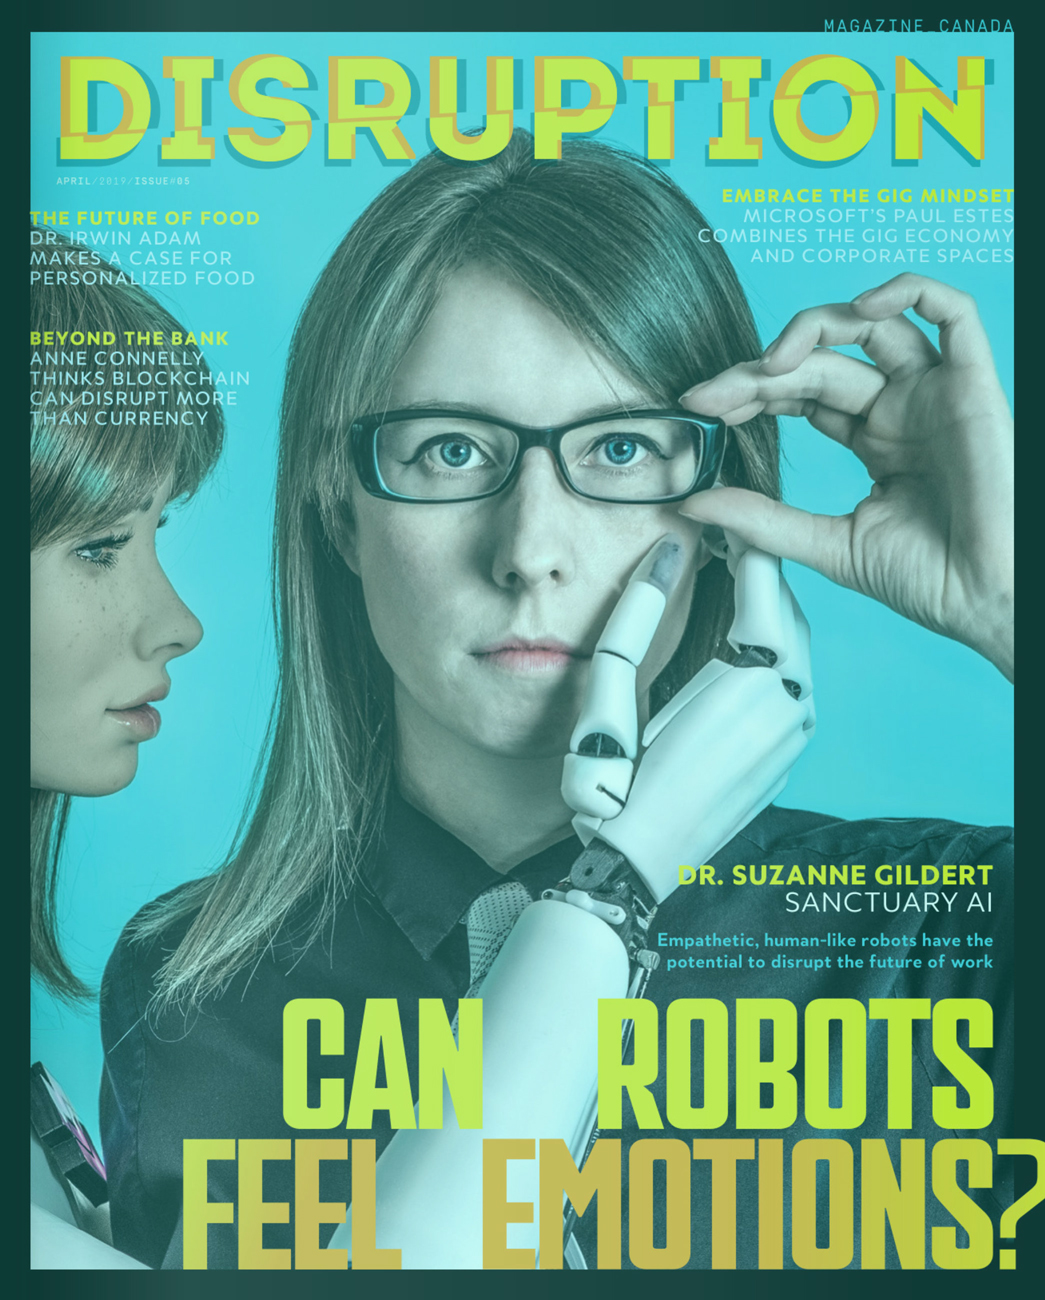 Disruption Magazine: Can Robots Feel Emotions? - Empathetic, human-like robots have the potential to disrupt the future of work. An interview with Sanctuary founder Dr. Suzanne Gildert.Disruption Magazine. 2019.